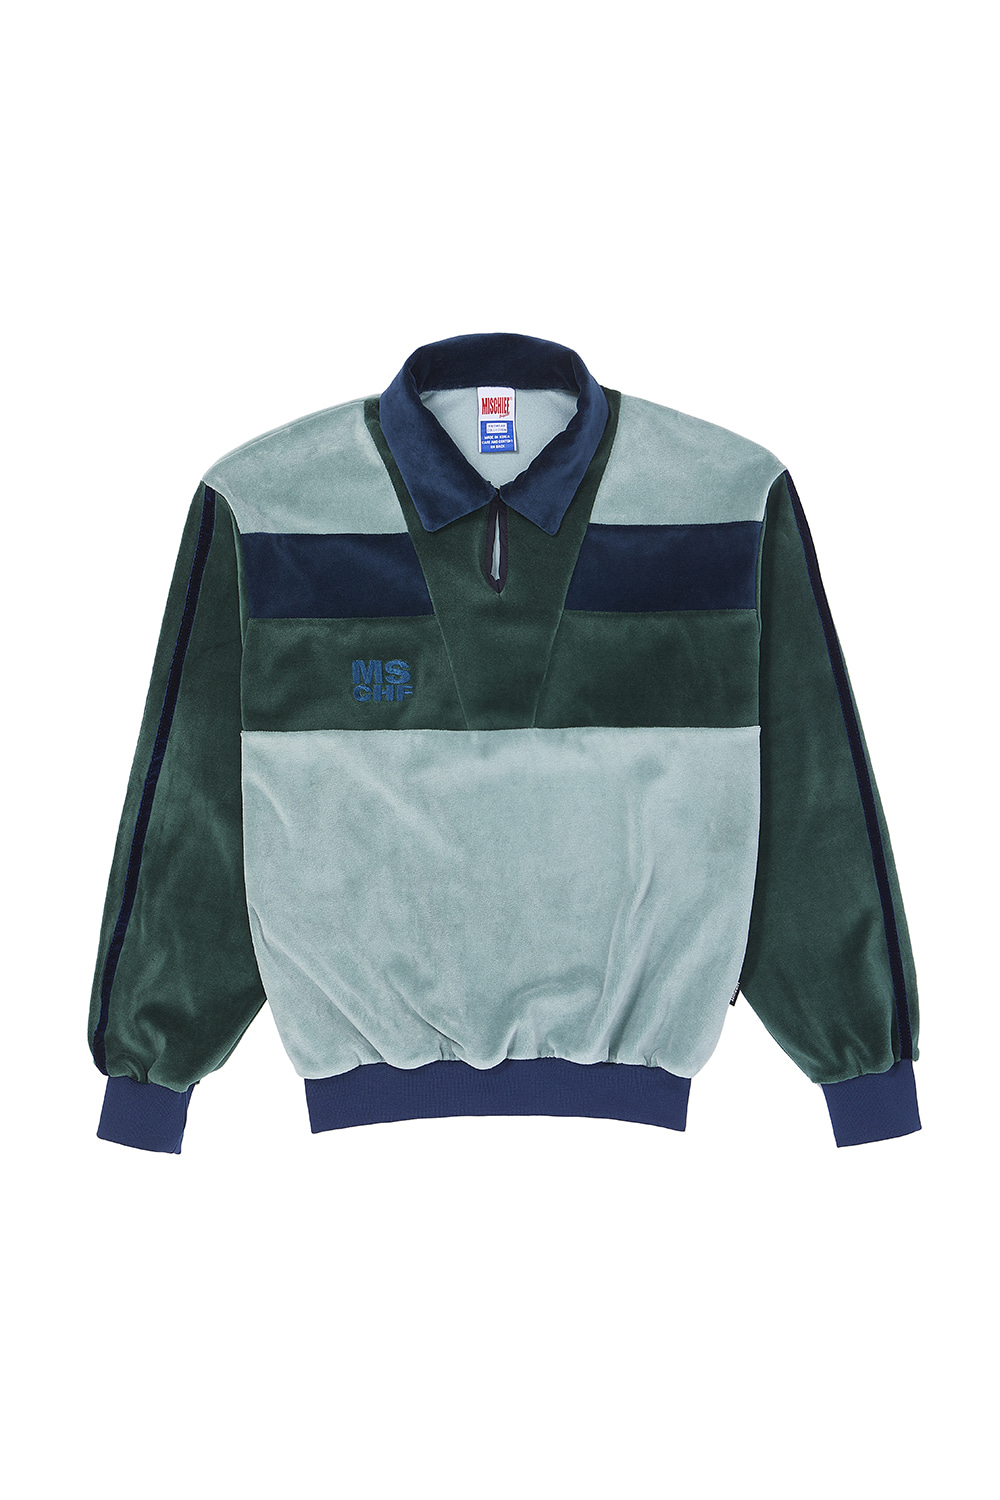 VELOUR COLOR BLOCK JERSEY_green multi